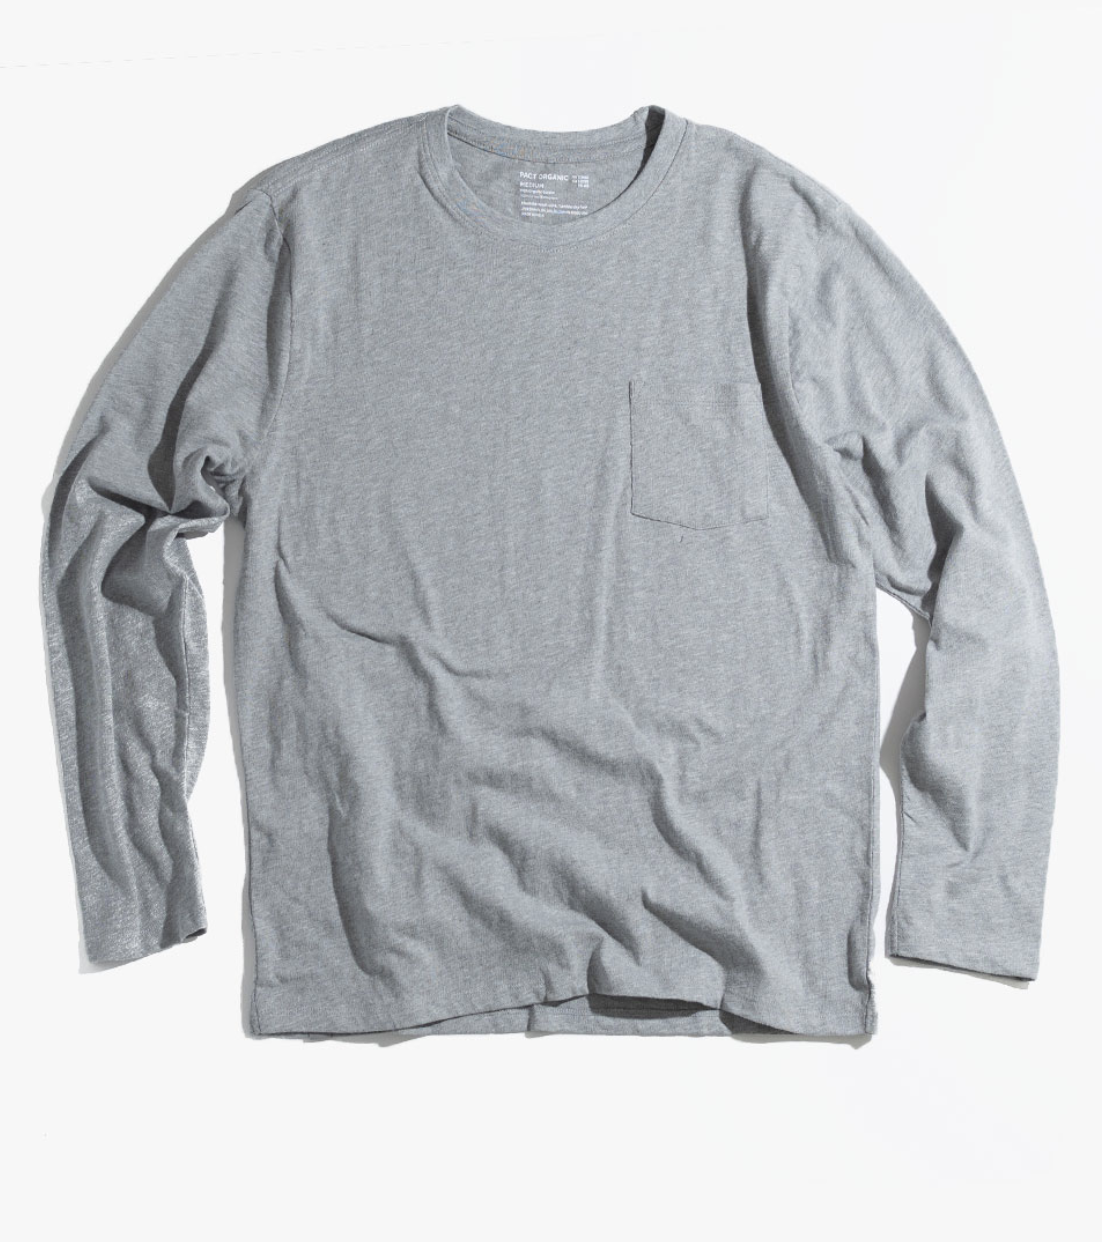 LONG SLEEVE - This $24 long sleeve from Pact is made with 100% Organic Cotton and is incredibly soft. And if this is a gift for your significant other, you can totally steal it for yourself.